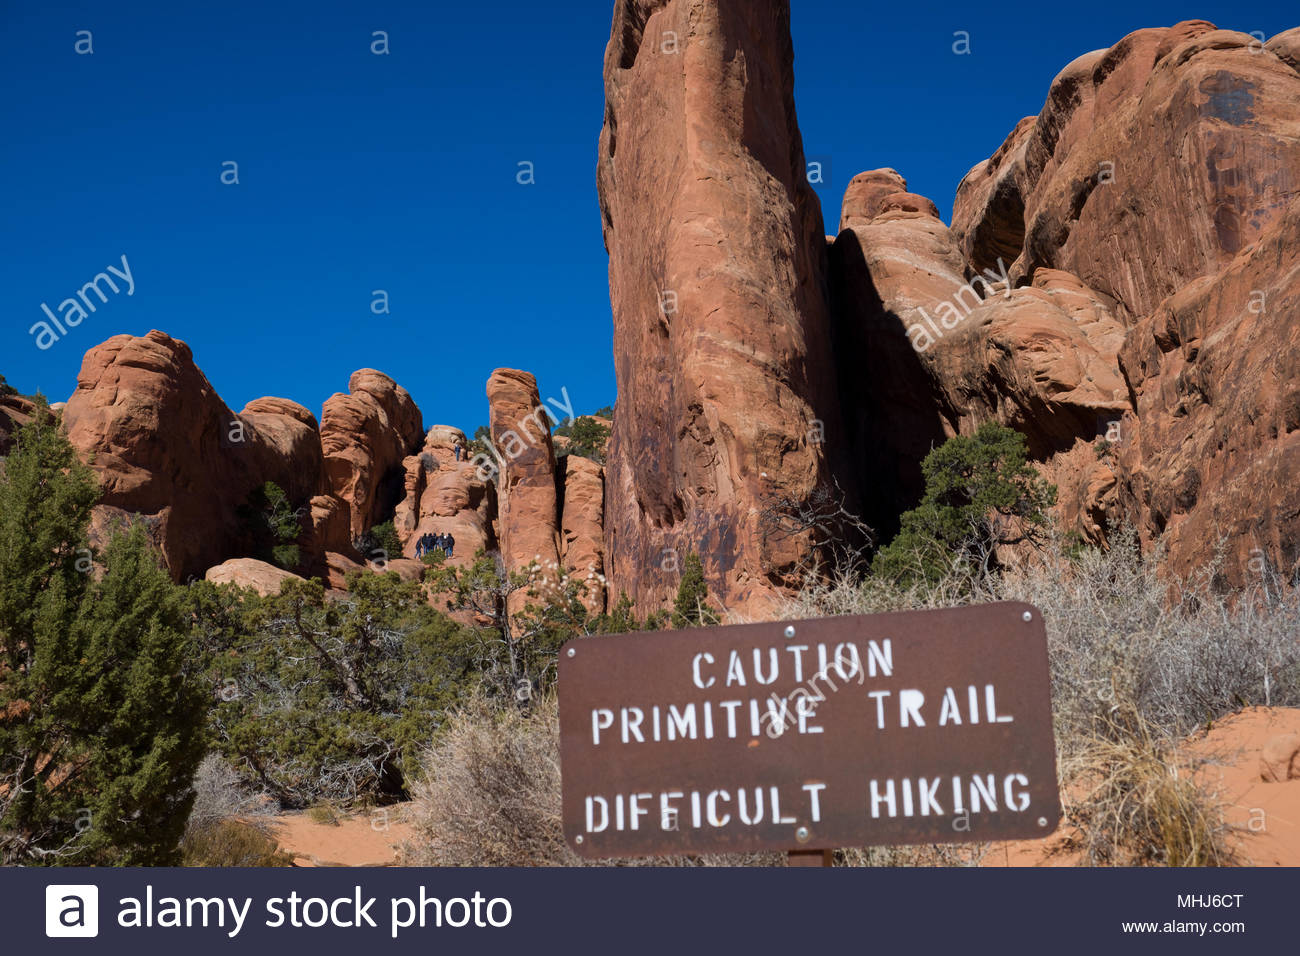 Metal sign cautioning about primitive trail with difficult hiking conditions on the Devils Garden Trail in Arches National Park, Grand County, Utah, U - Stock Image